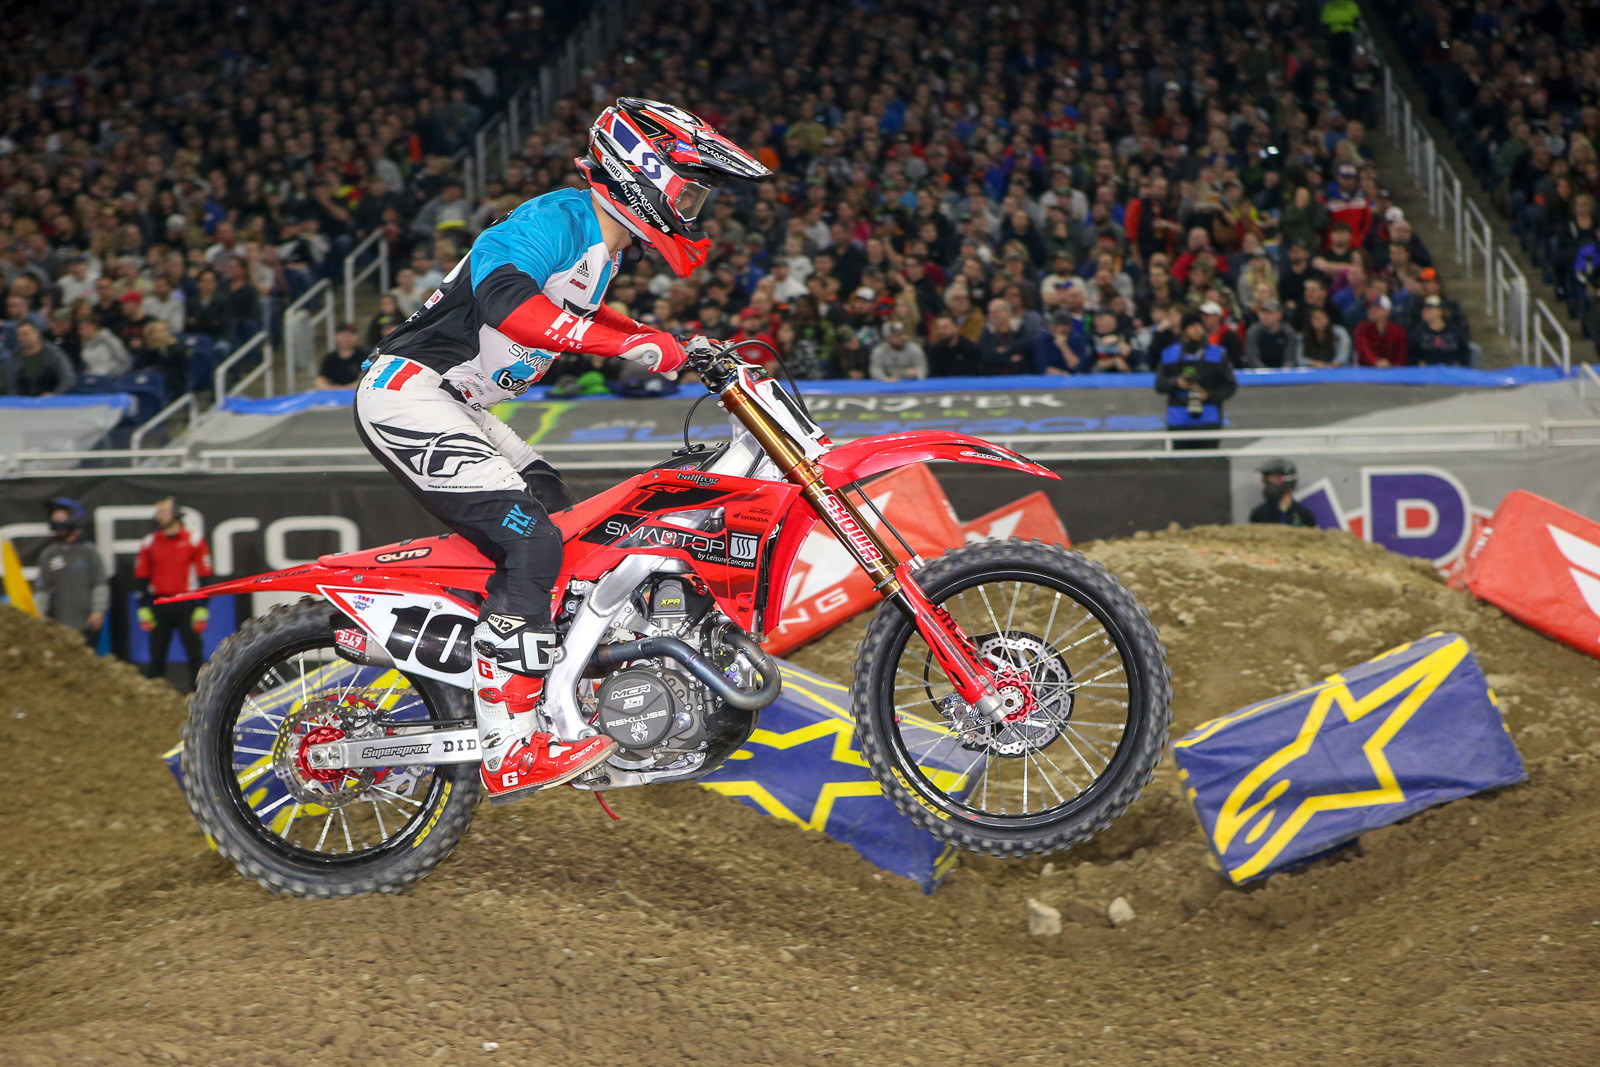 For a good chunk of the first main event, it looked like Justin Brayton might grab another win.